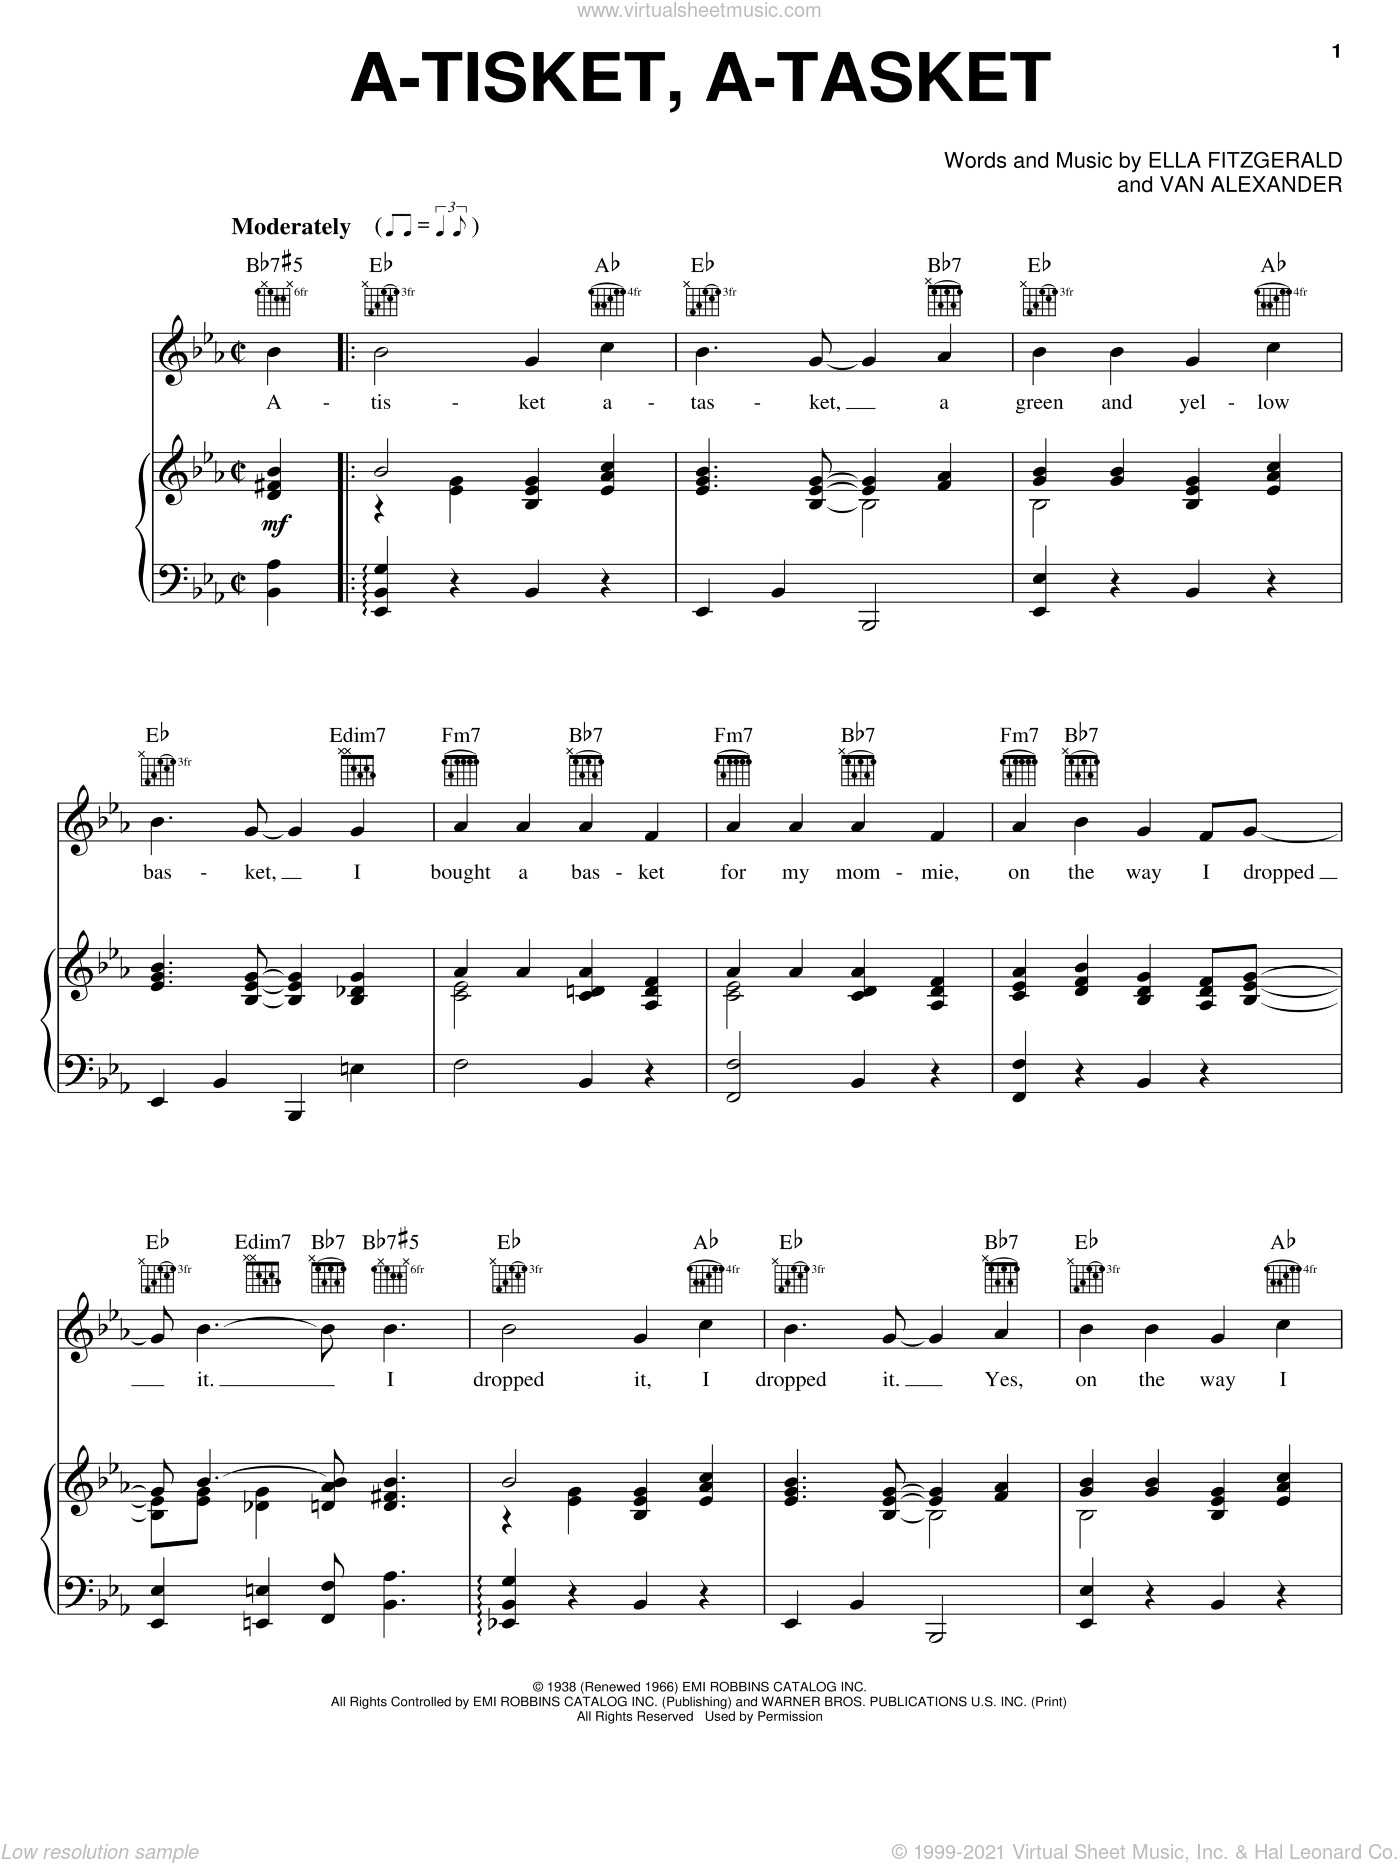 A-Tisket, A-Tasket sheet music for voice, piano or guitar by Van Alexander and Ella Fitzgerald. Score Image Preview.